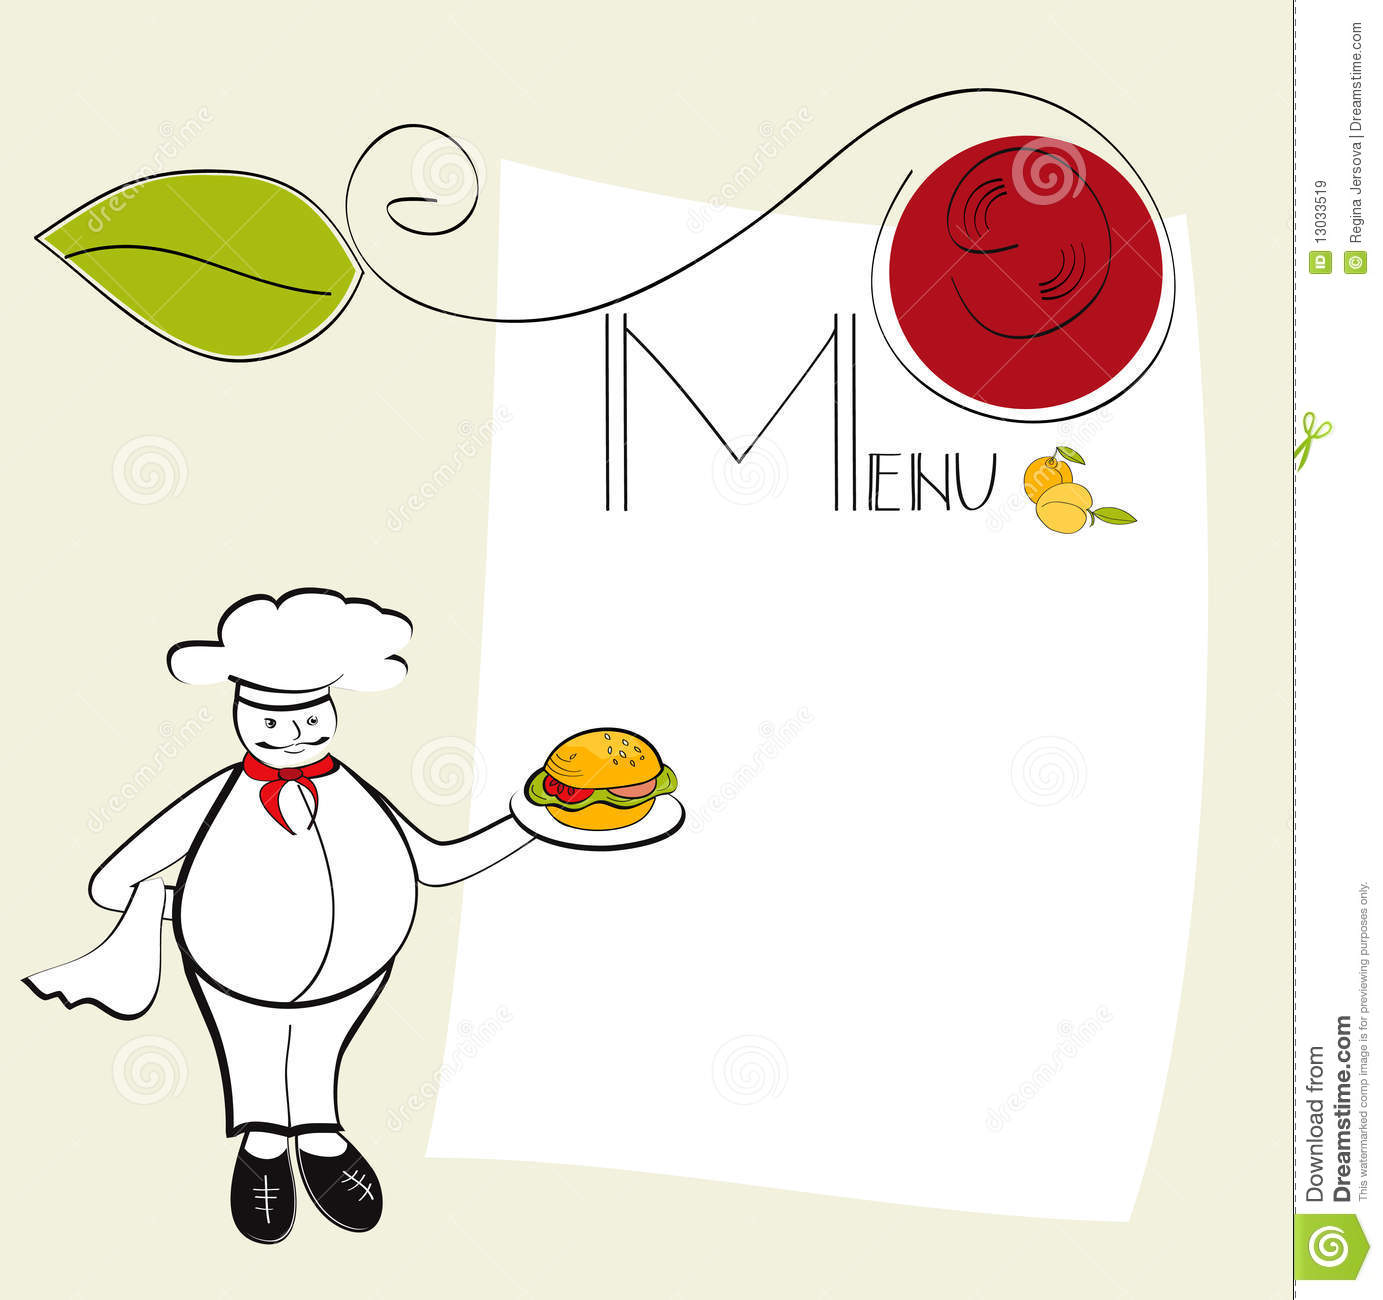 chef template resource - template for menu royalty free stock images image 13033519